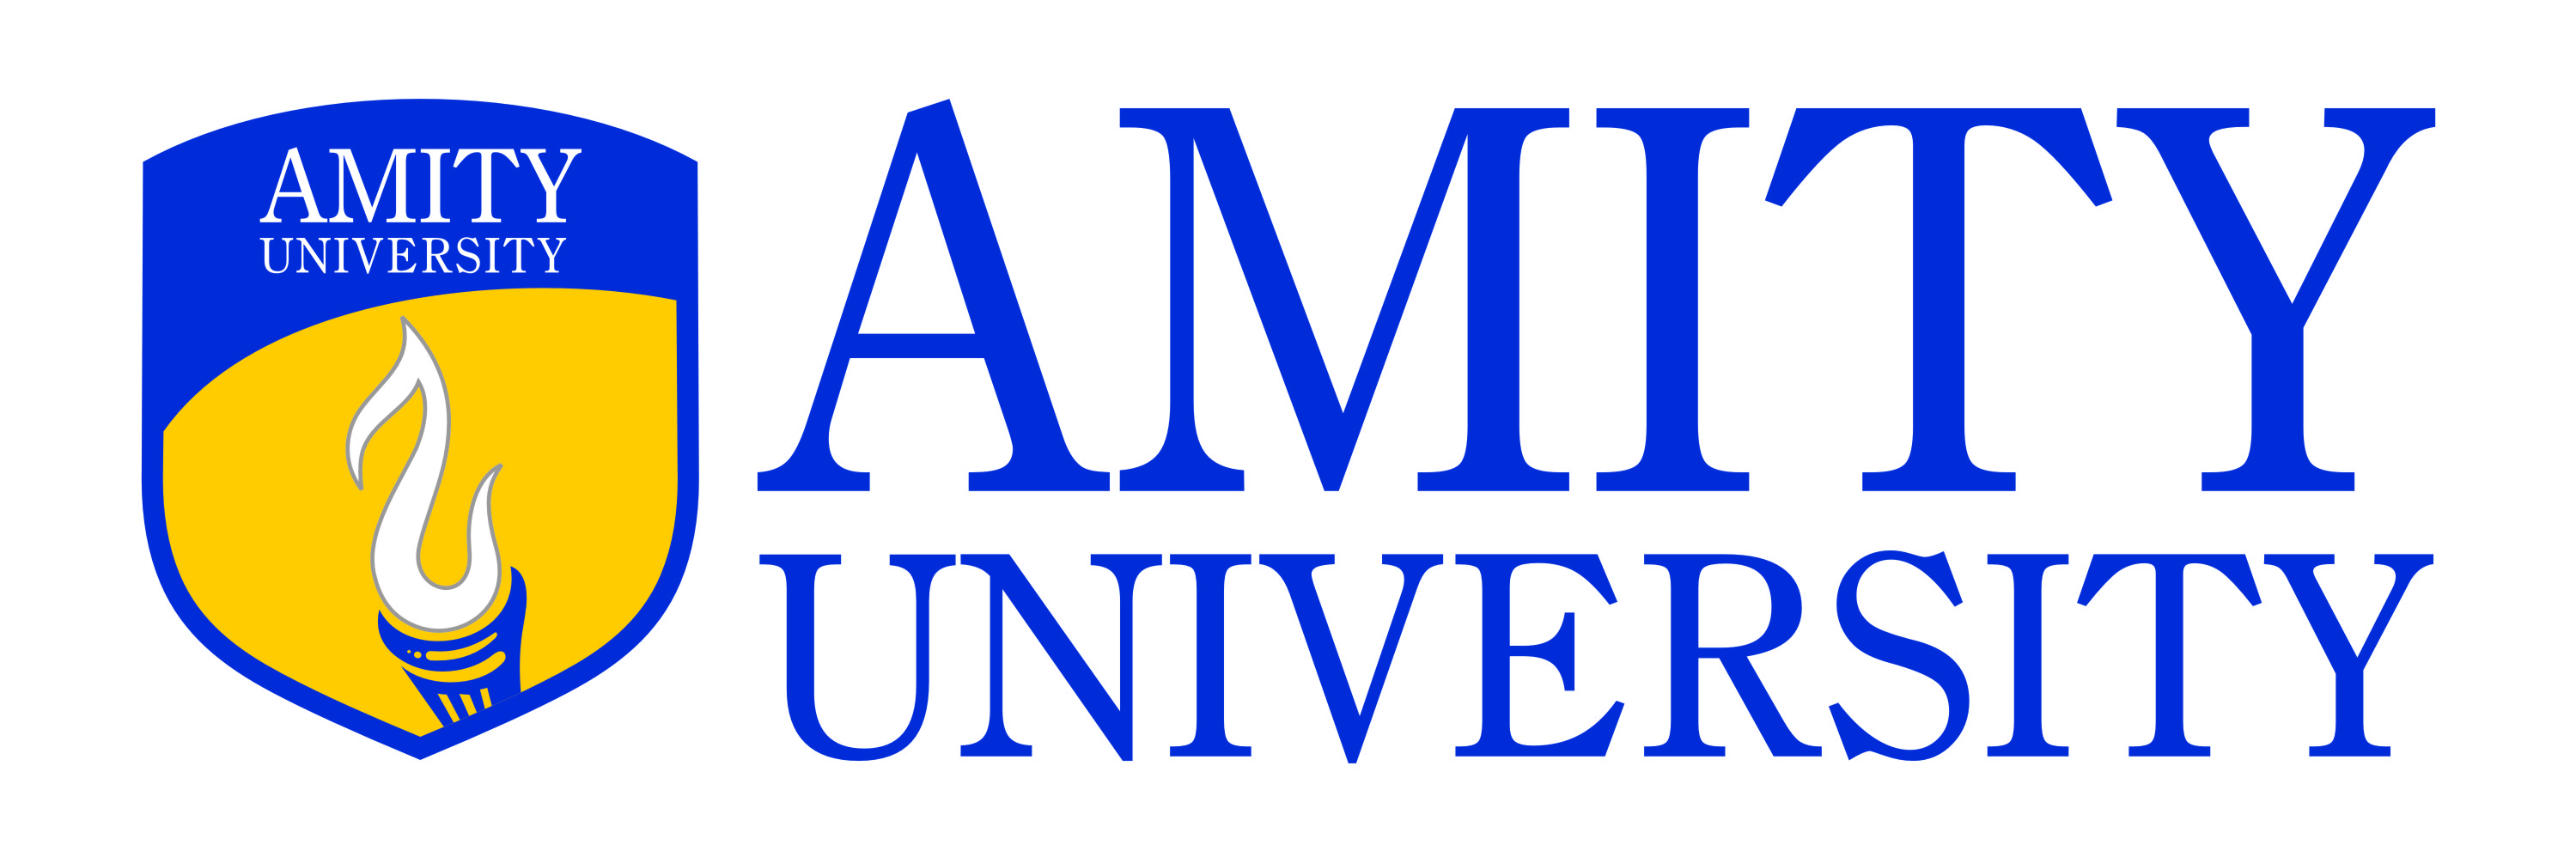 Job: Senior Academicians @ Amity University, Noida